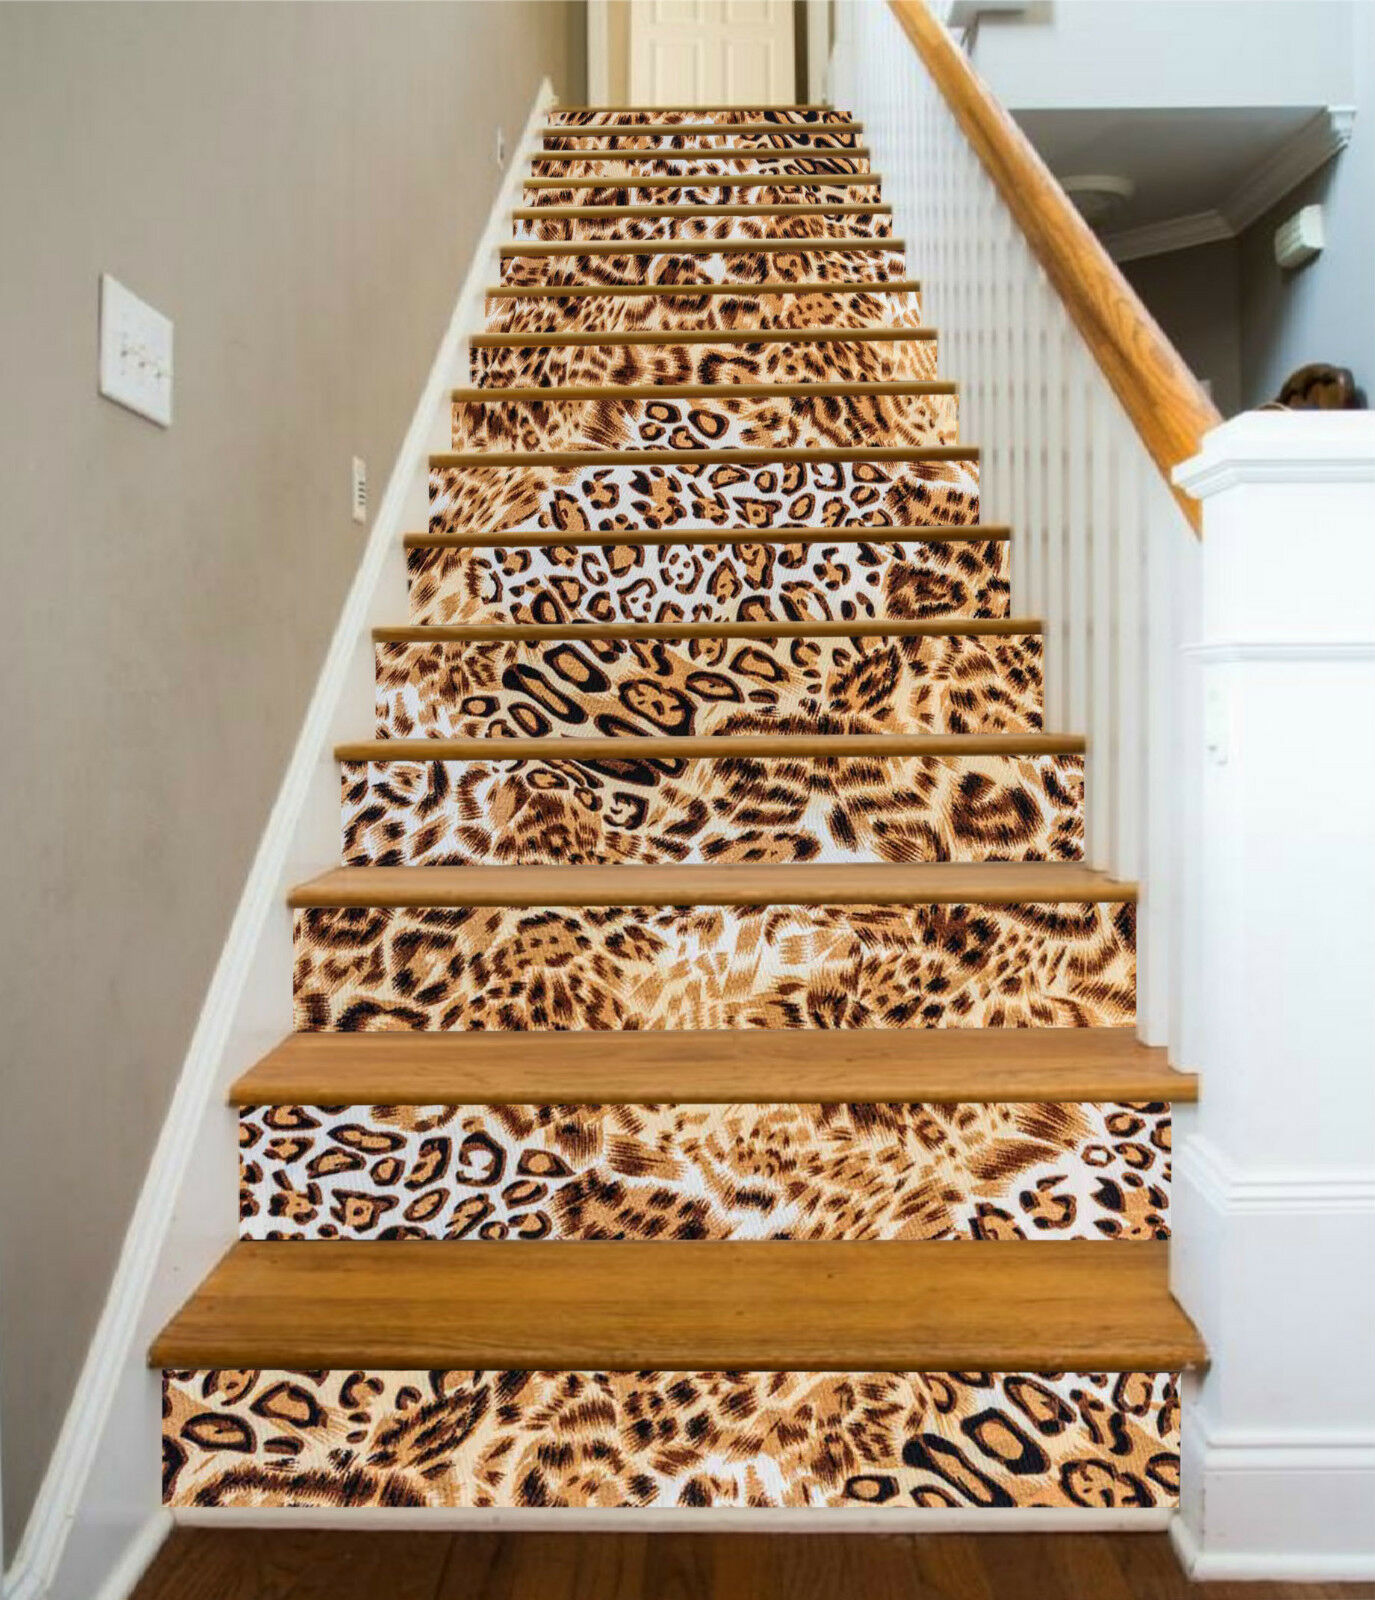 Leder Muster Tapete Save Up To 70 Discount 3d Leopard Leder 03 Stair Stair Stair Risers